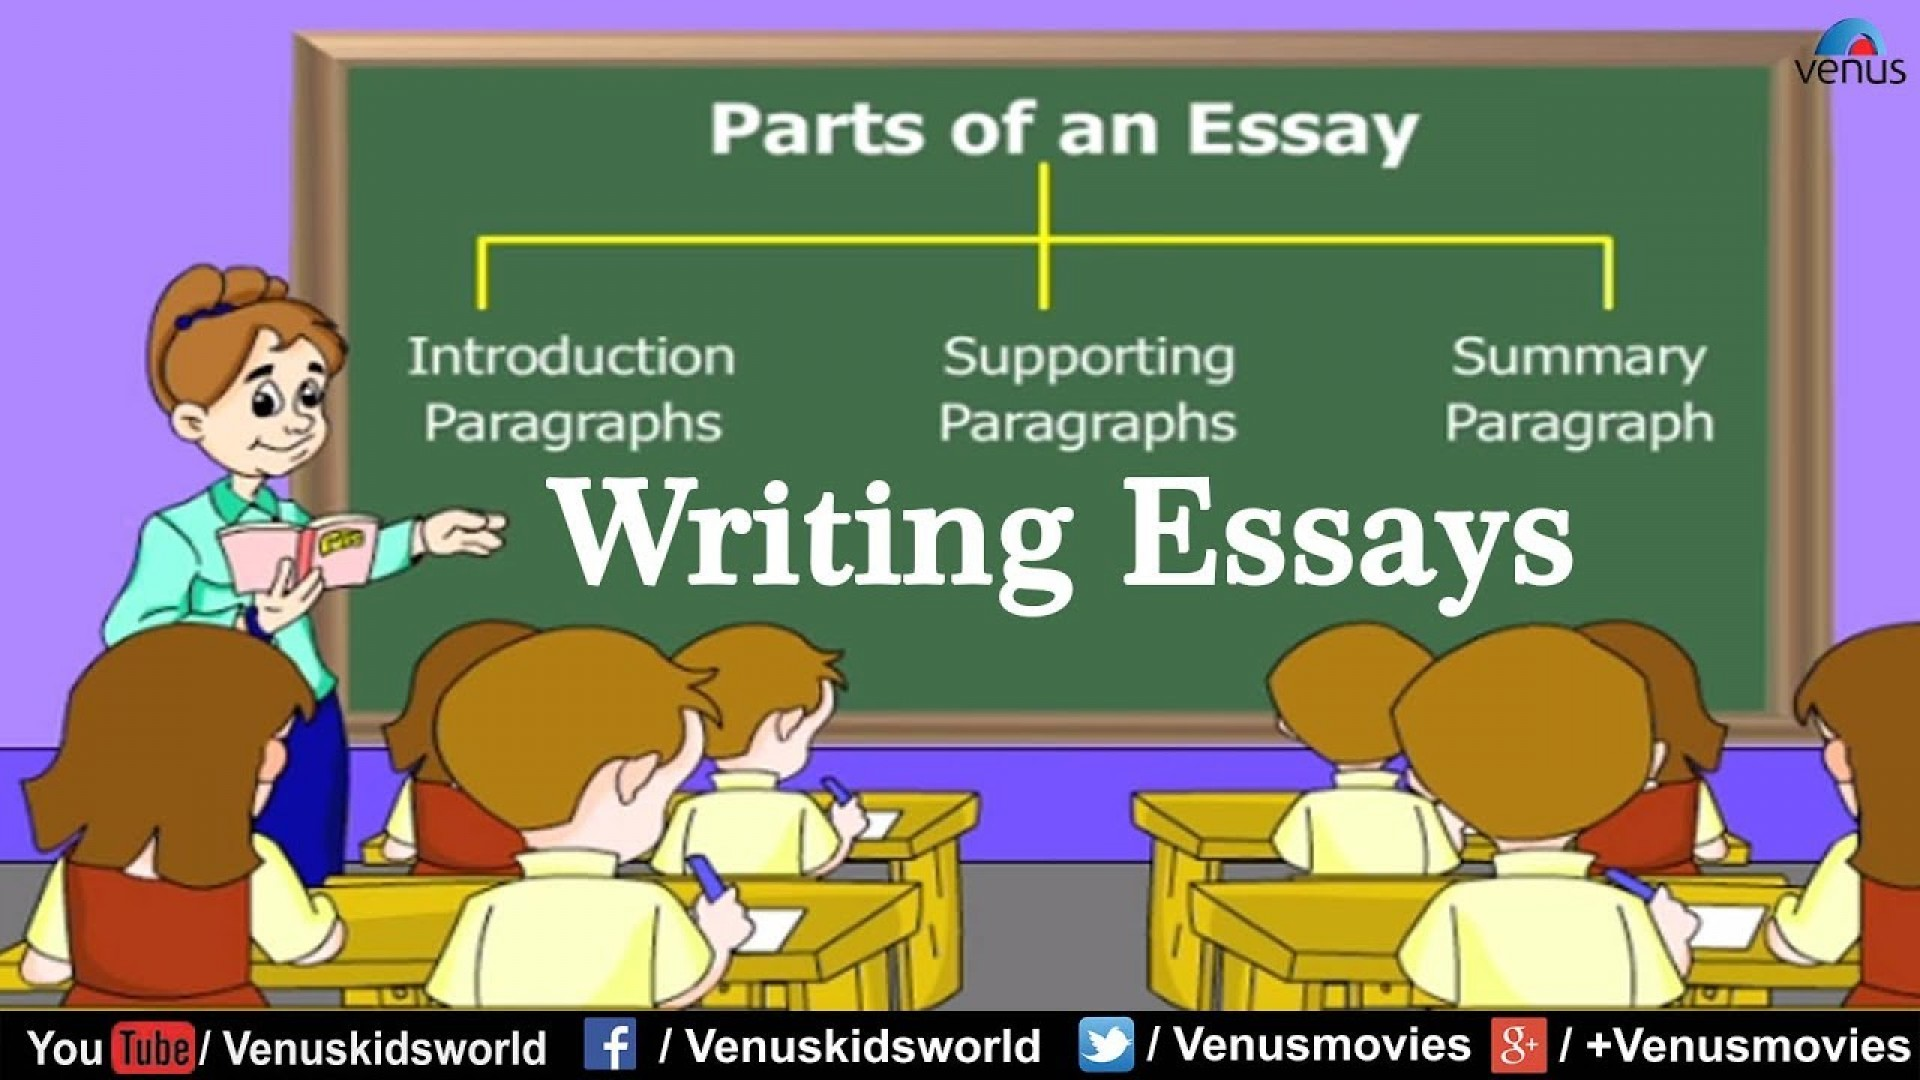 001 Essay Example What Are The Parts Of An Striking Three Introduction Evaluative And Their Meaning 1920